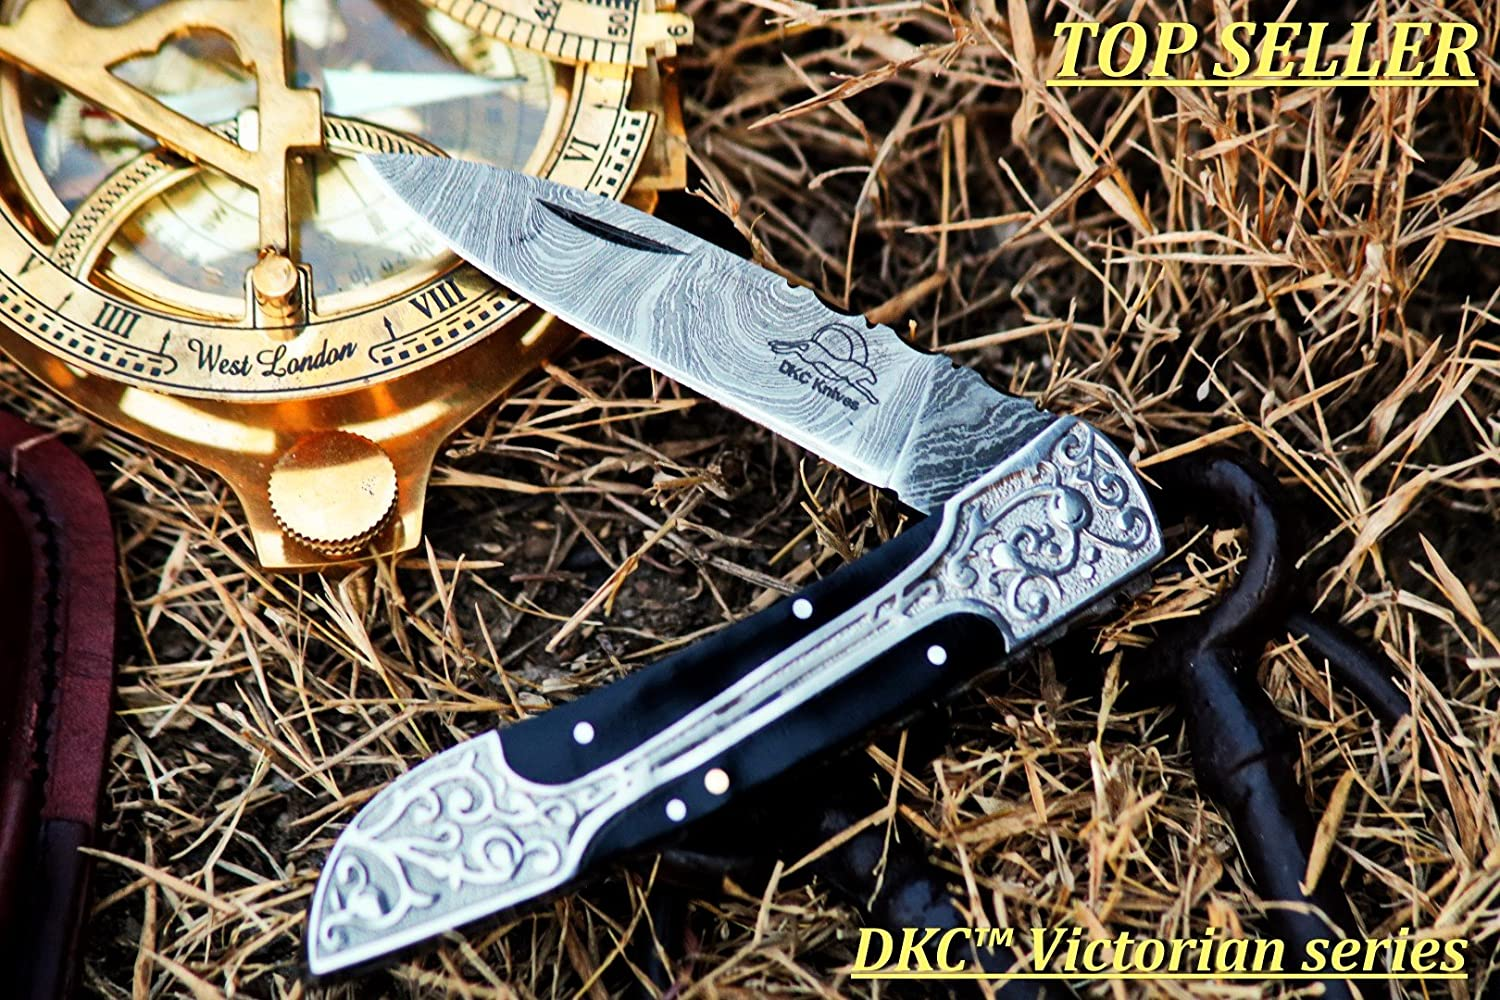 DKC Knives 16 5 18 Sale DKC-37-BH Victorian Damascus Folding Pocket Knife Buffalo Horn 7.75 Long, 4.5 Folded 3 Blade 4.8oz Hand Made Incredible Look and Feel